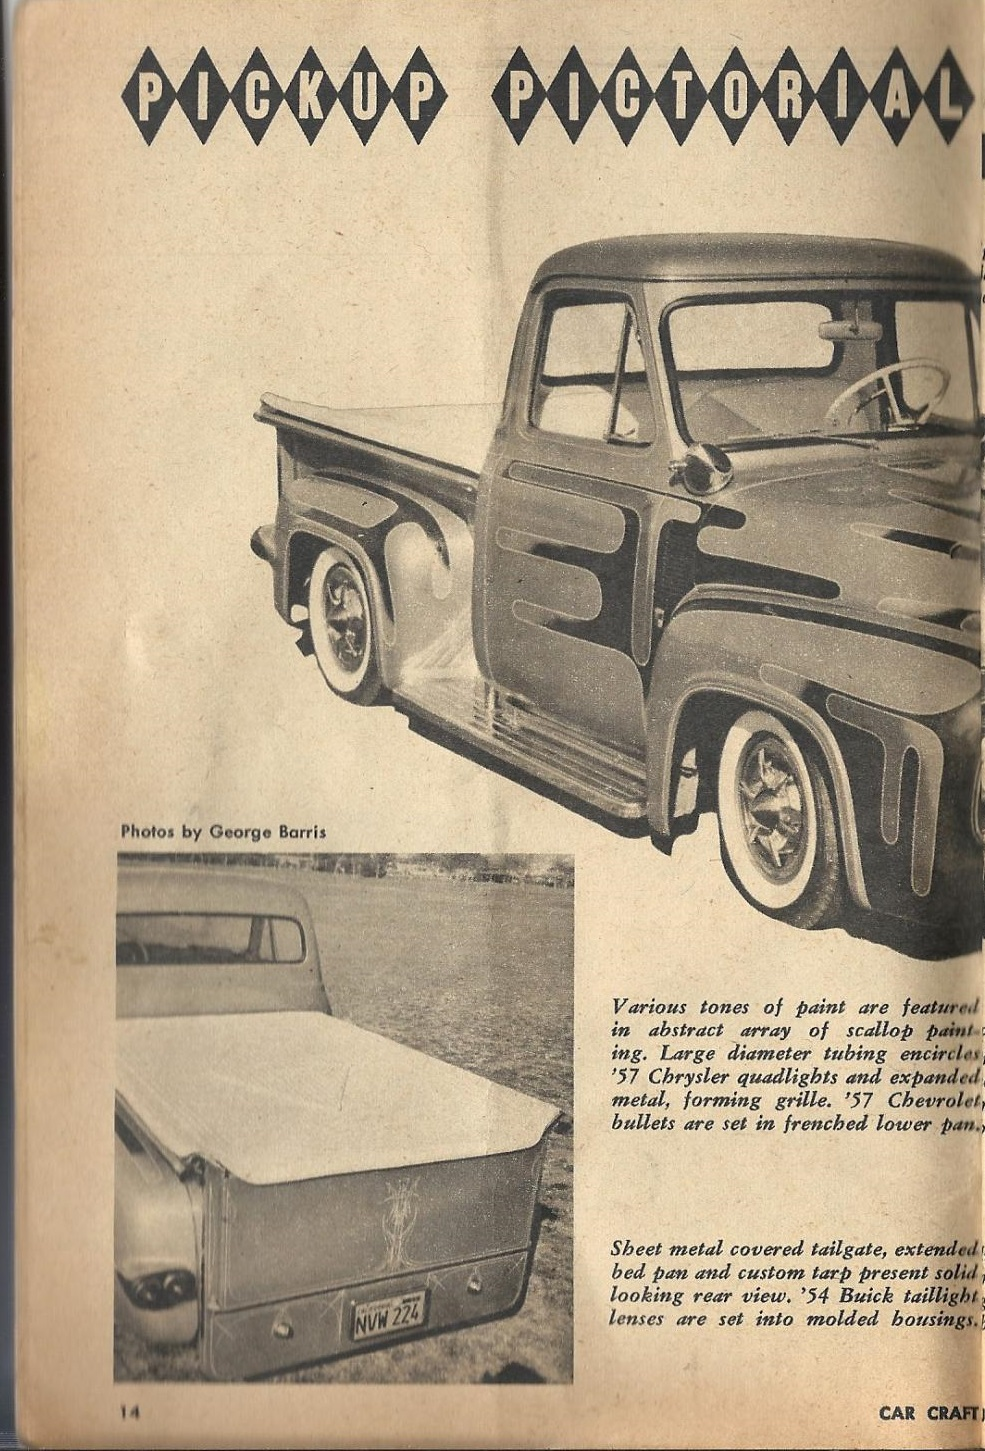 Car Craft - Special Pick Up June 1959 - Pick up Pictorial 1424